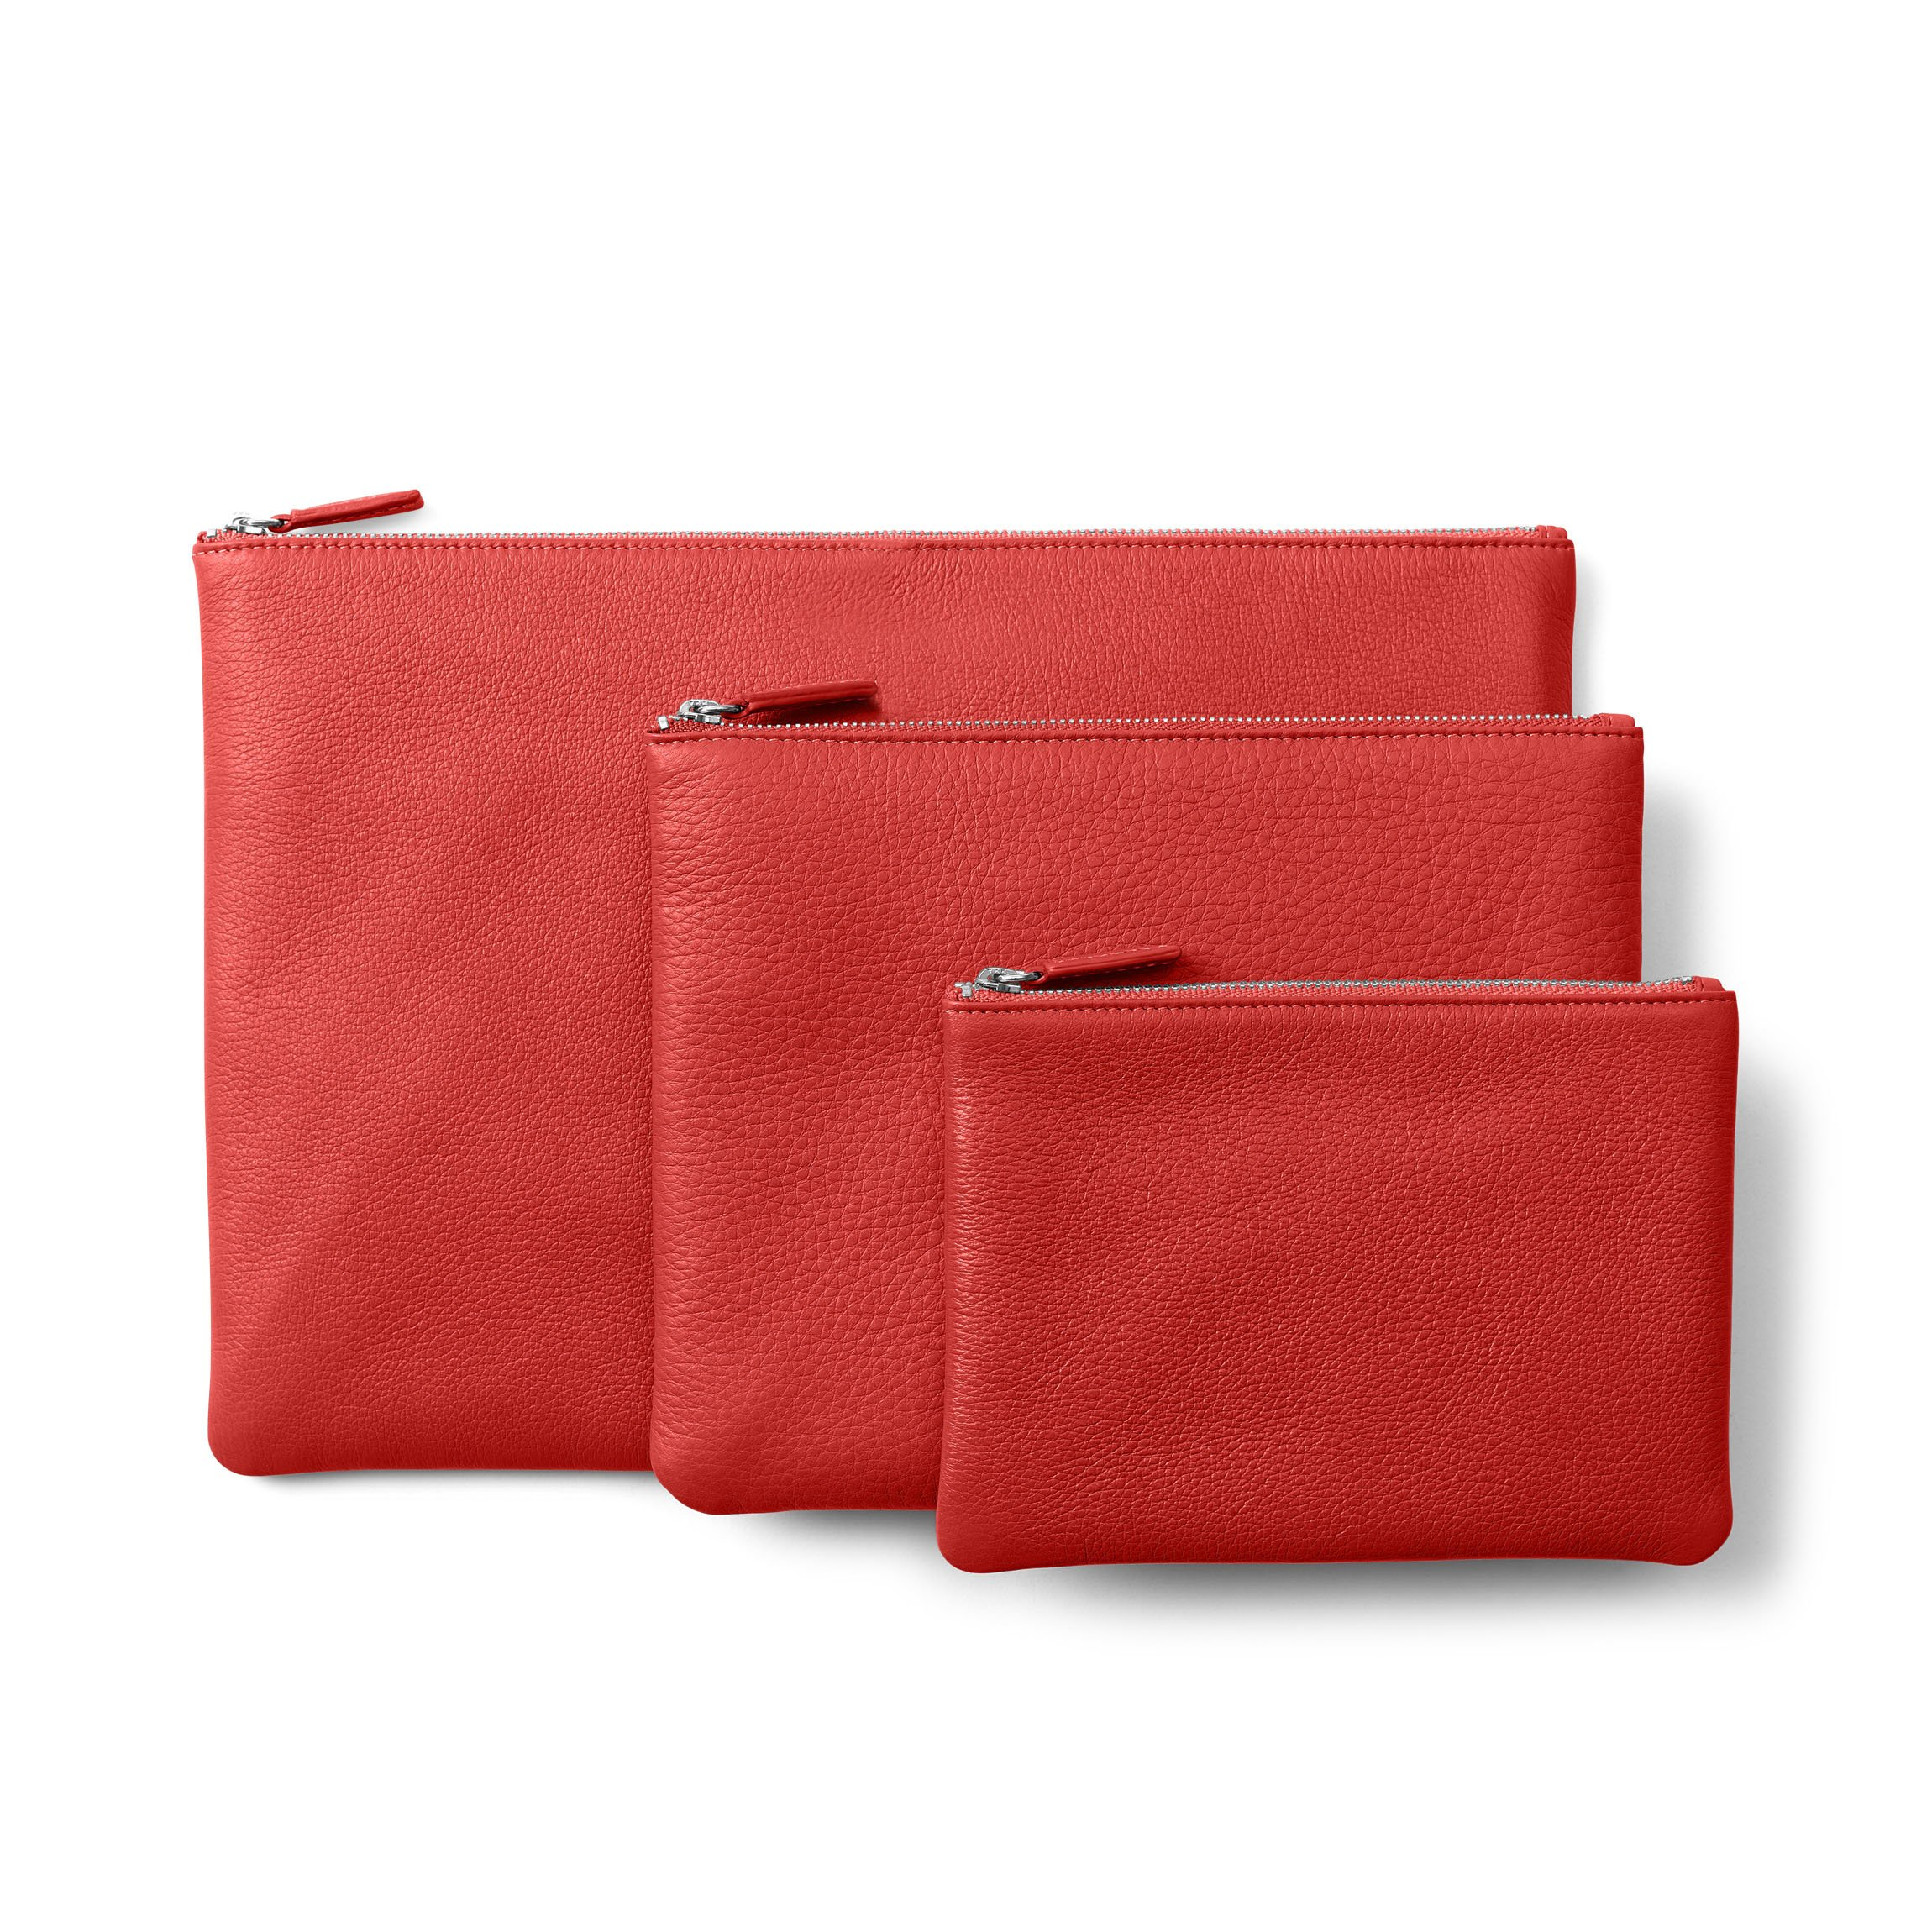 Zippered Pouches - Full Grain Leather Leather - Scarlet (red)